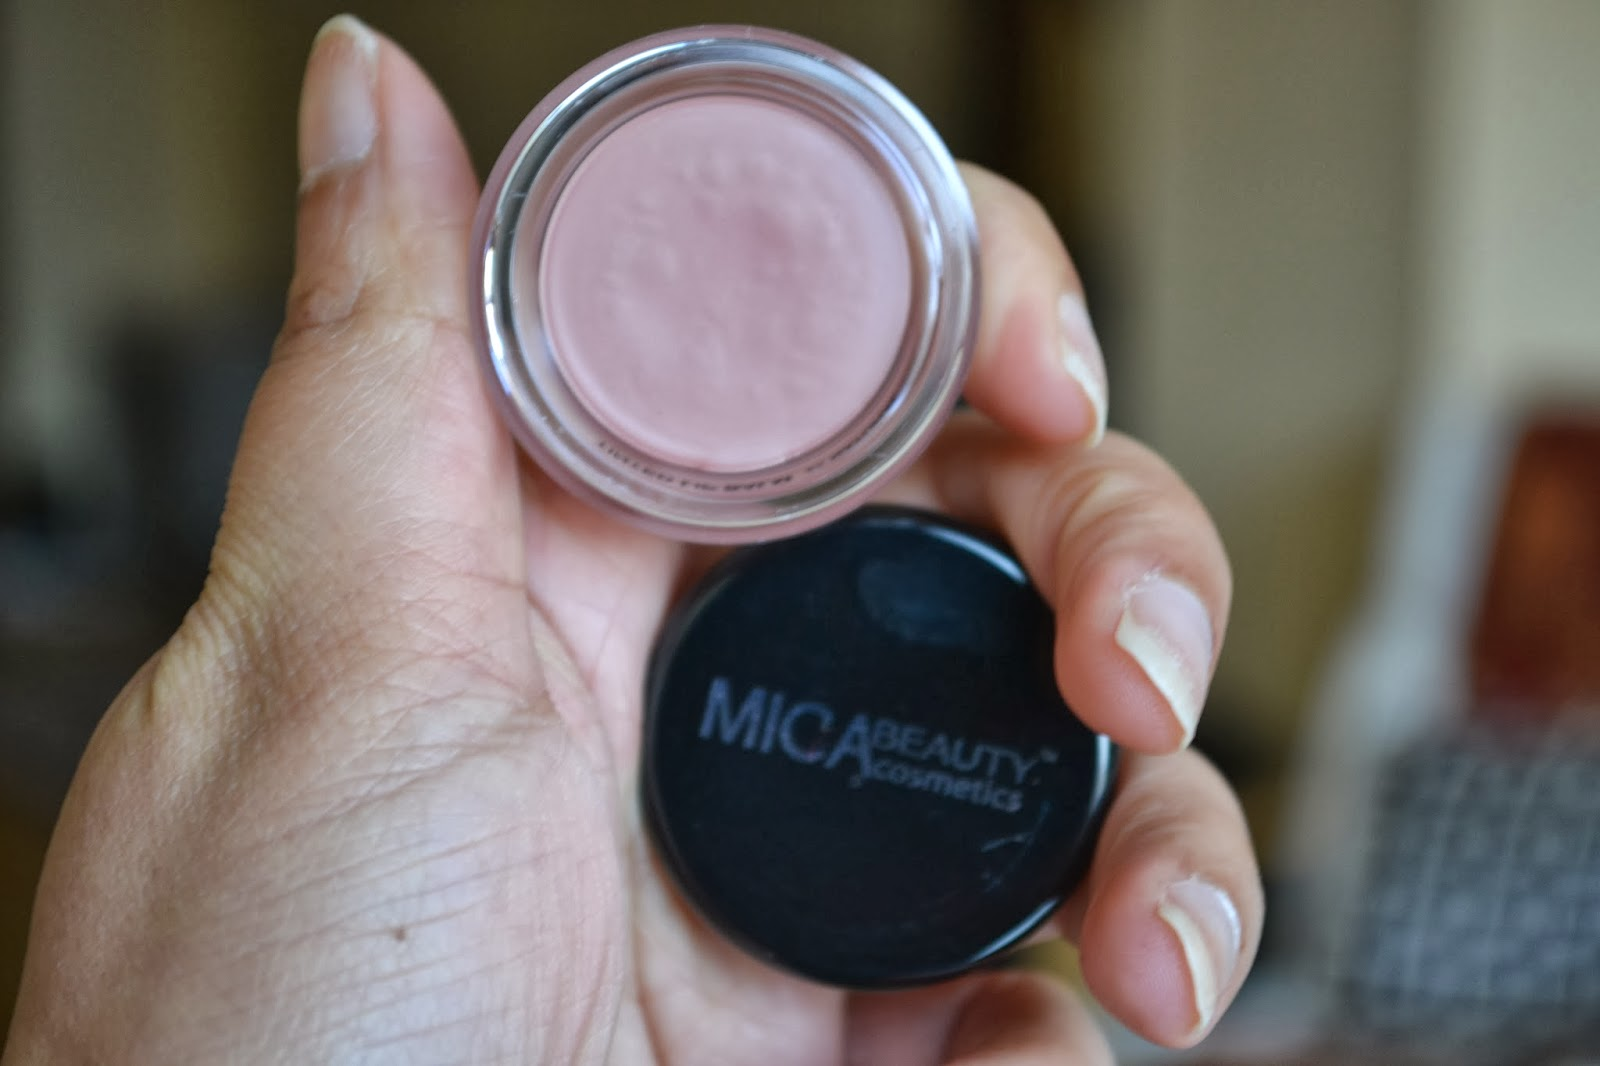 Mica Beauty Tinted Lip Balm